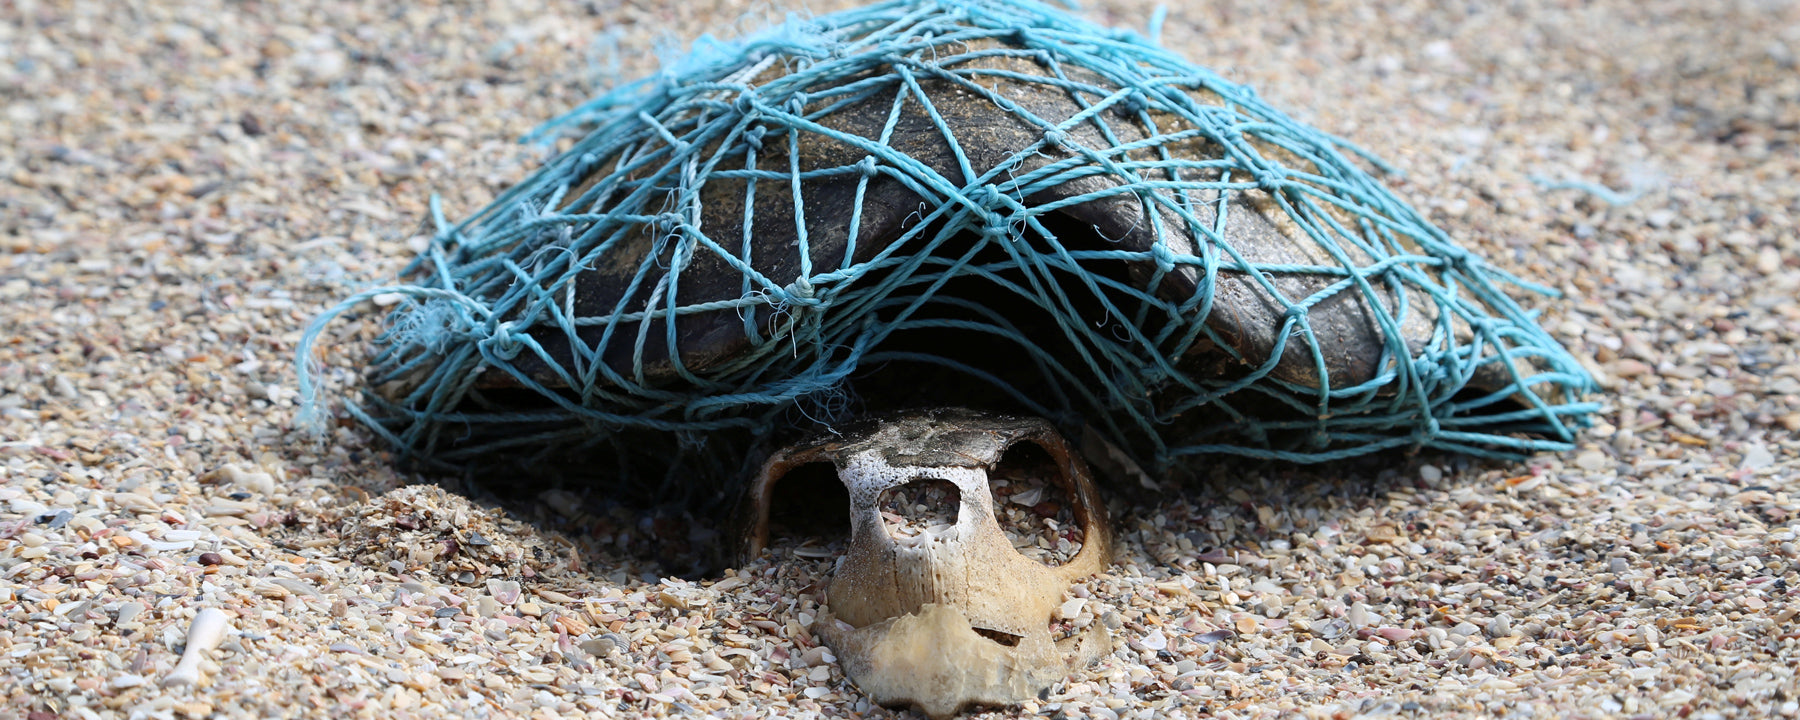 Turtle killed by ghost net - Paul Walters/SWNS